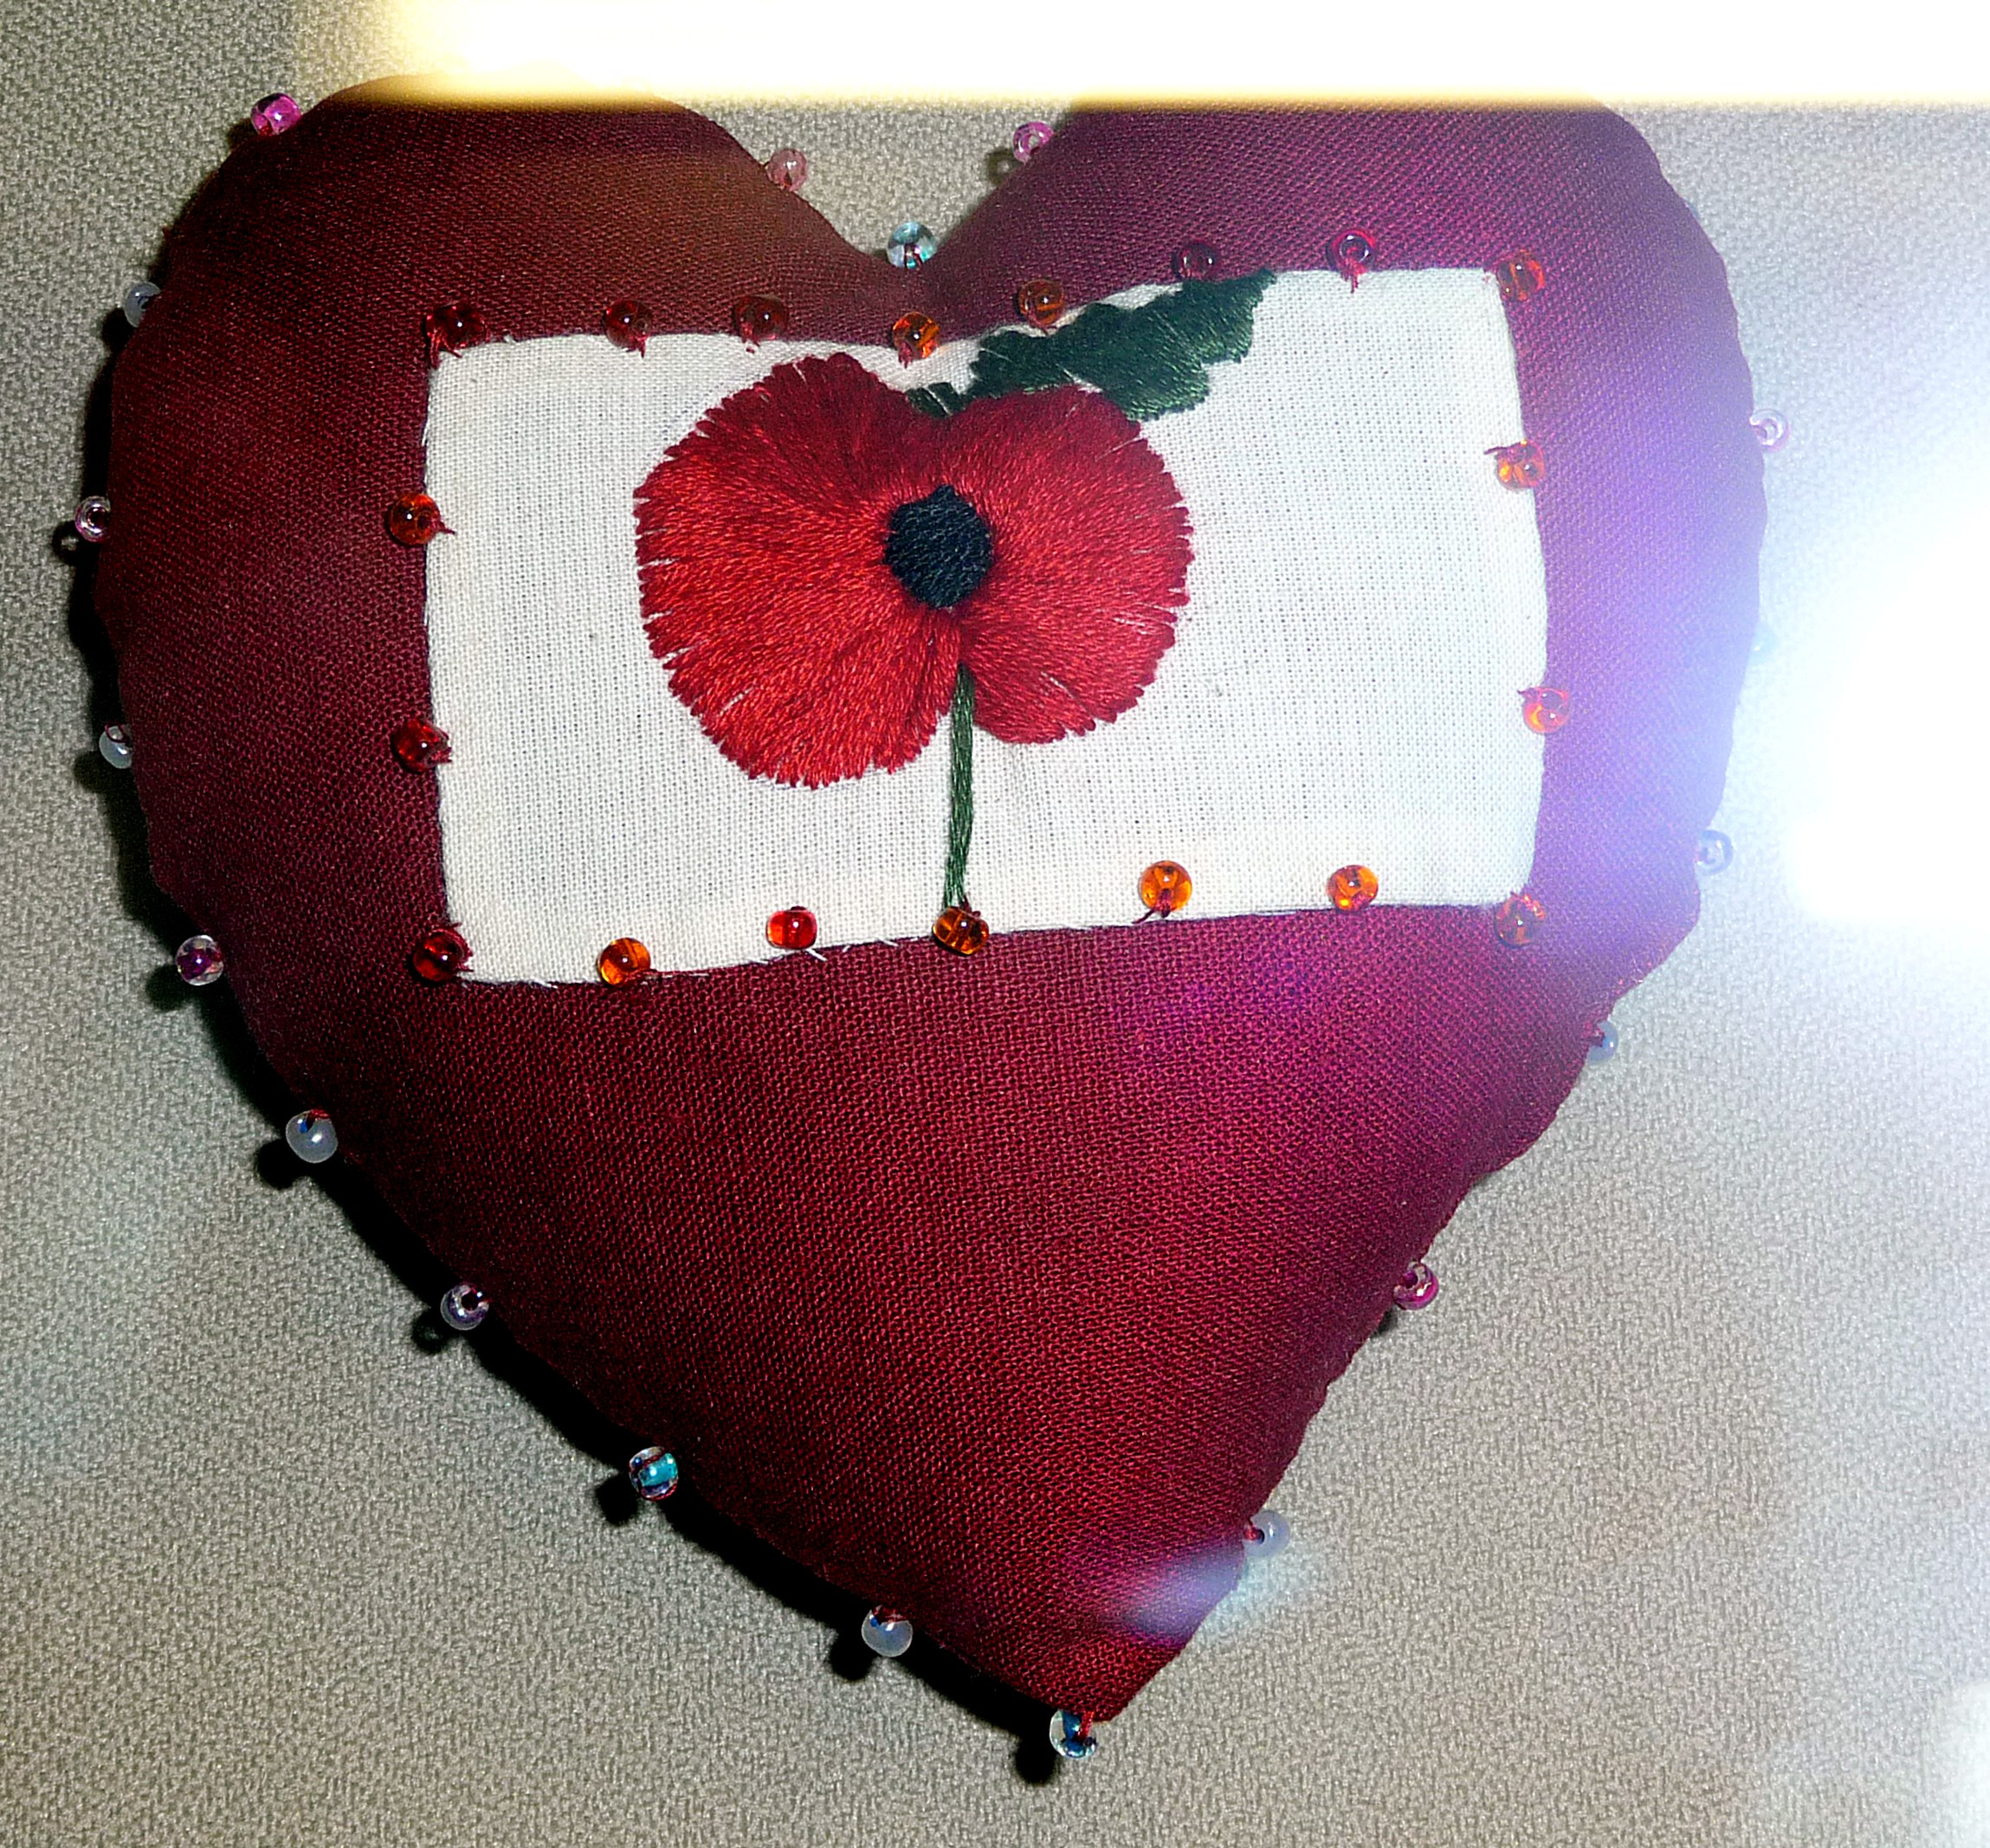 pincushion to commemorate World War 1 made by Sharon Brown